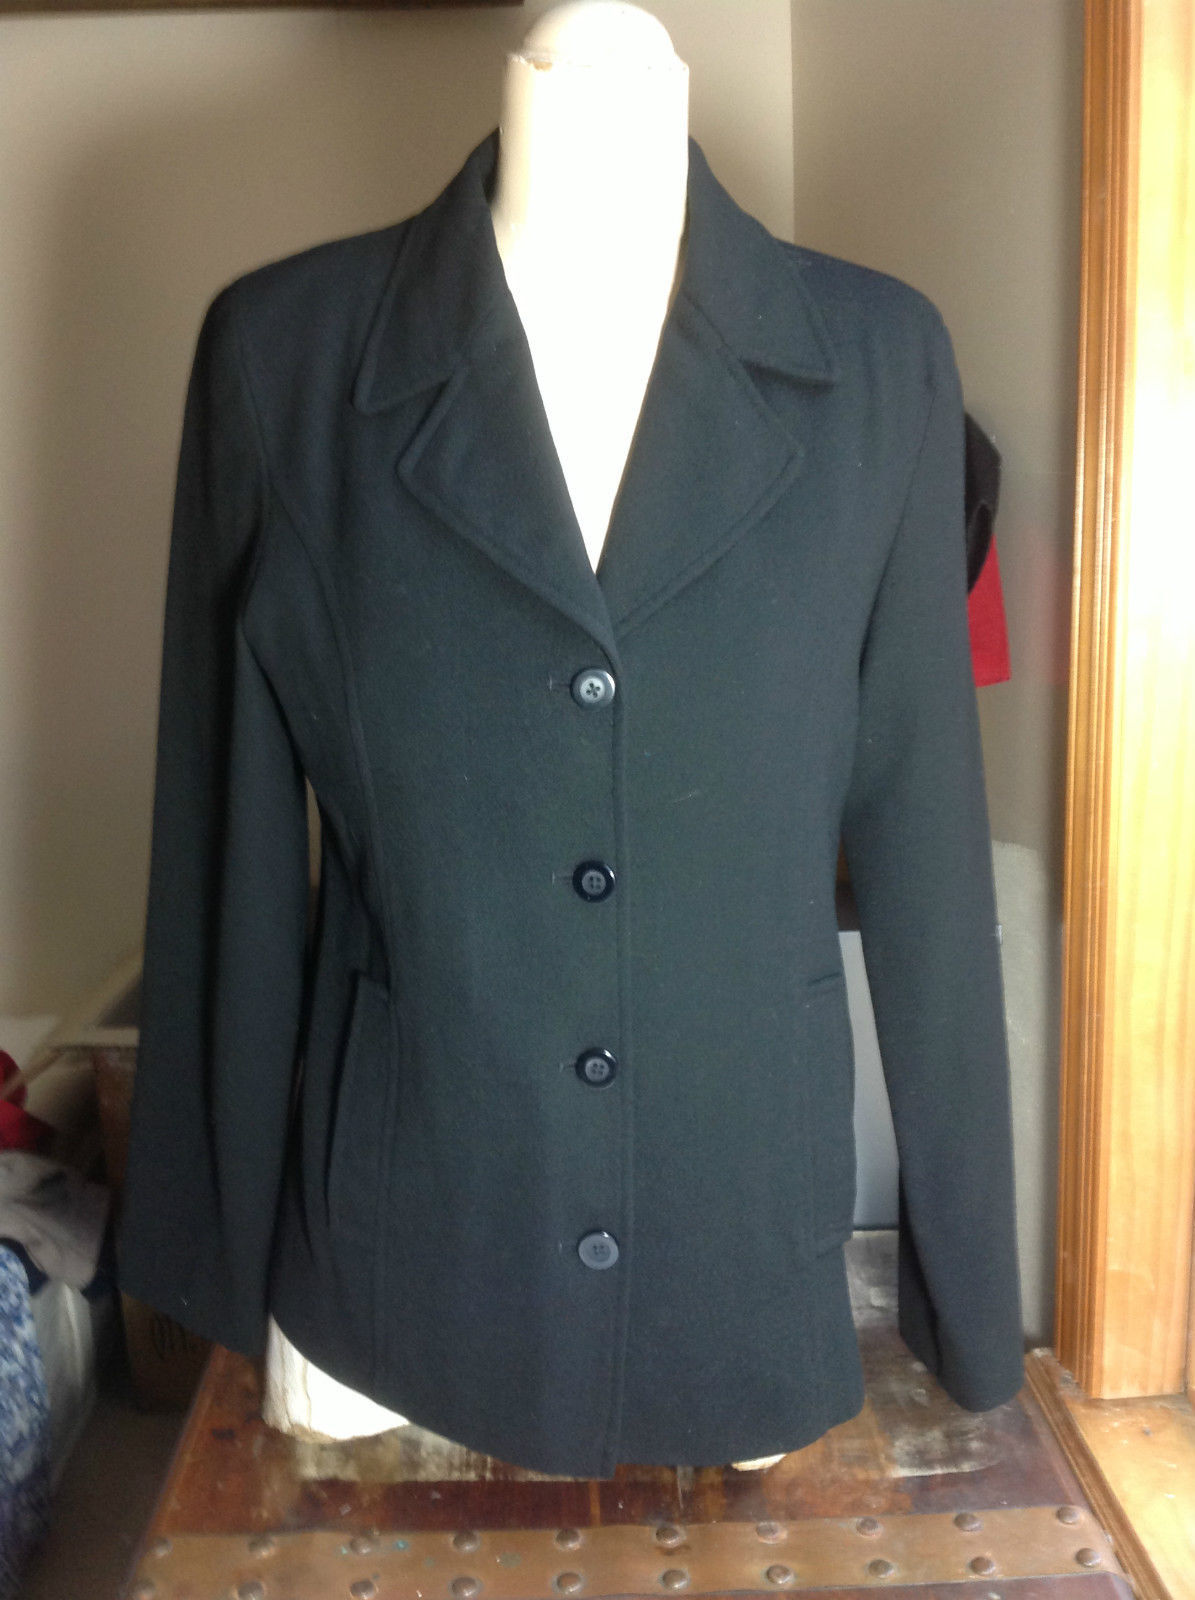 Francess Rita Long Sleeve Black Blazer 4 Button Closure Size 6